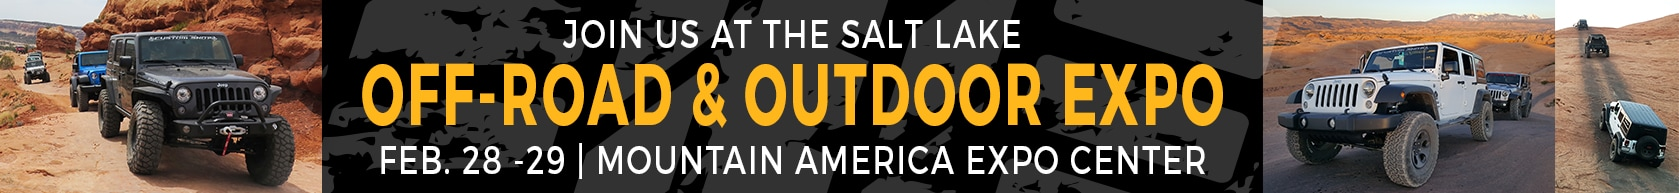 Join us at the Salt Lake Off-Road & Outdoor Expo